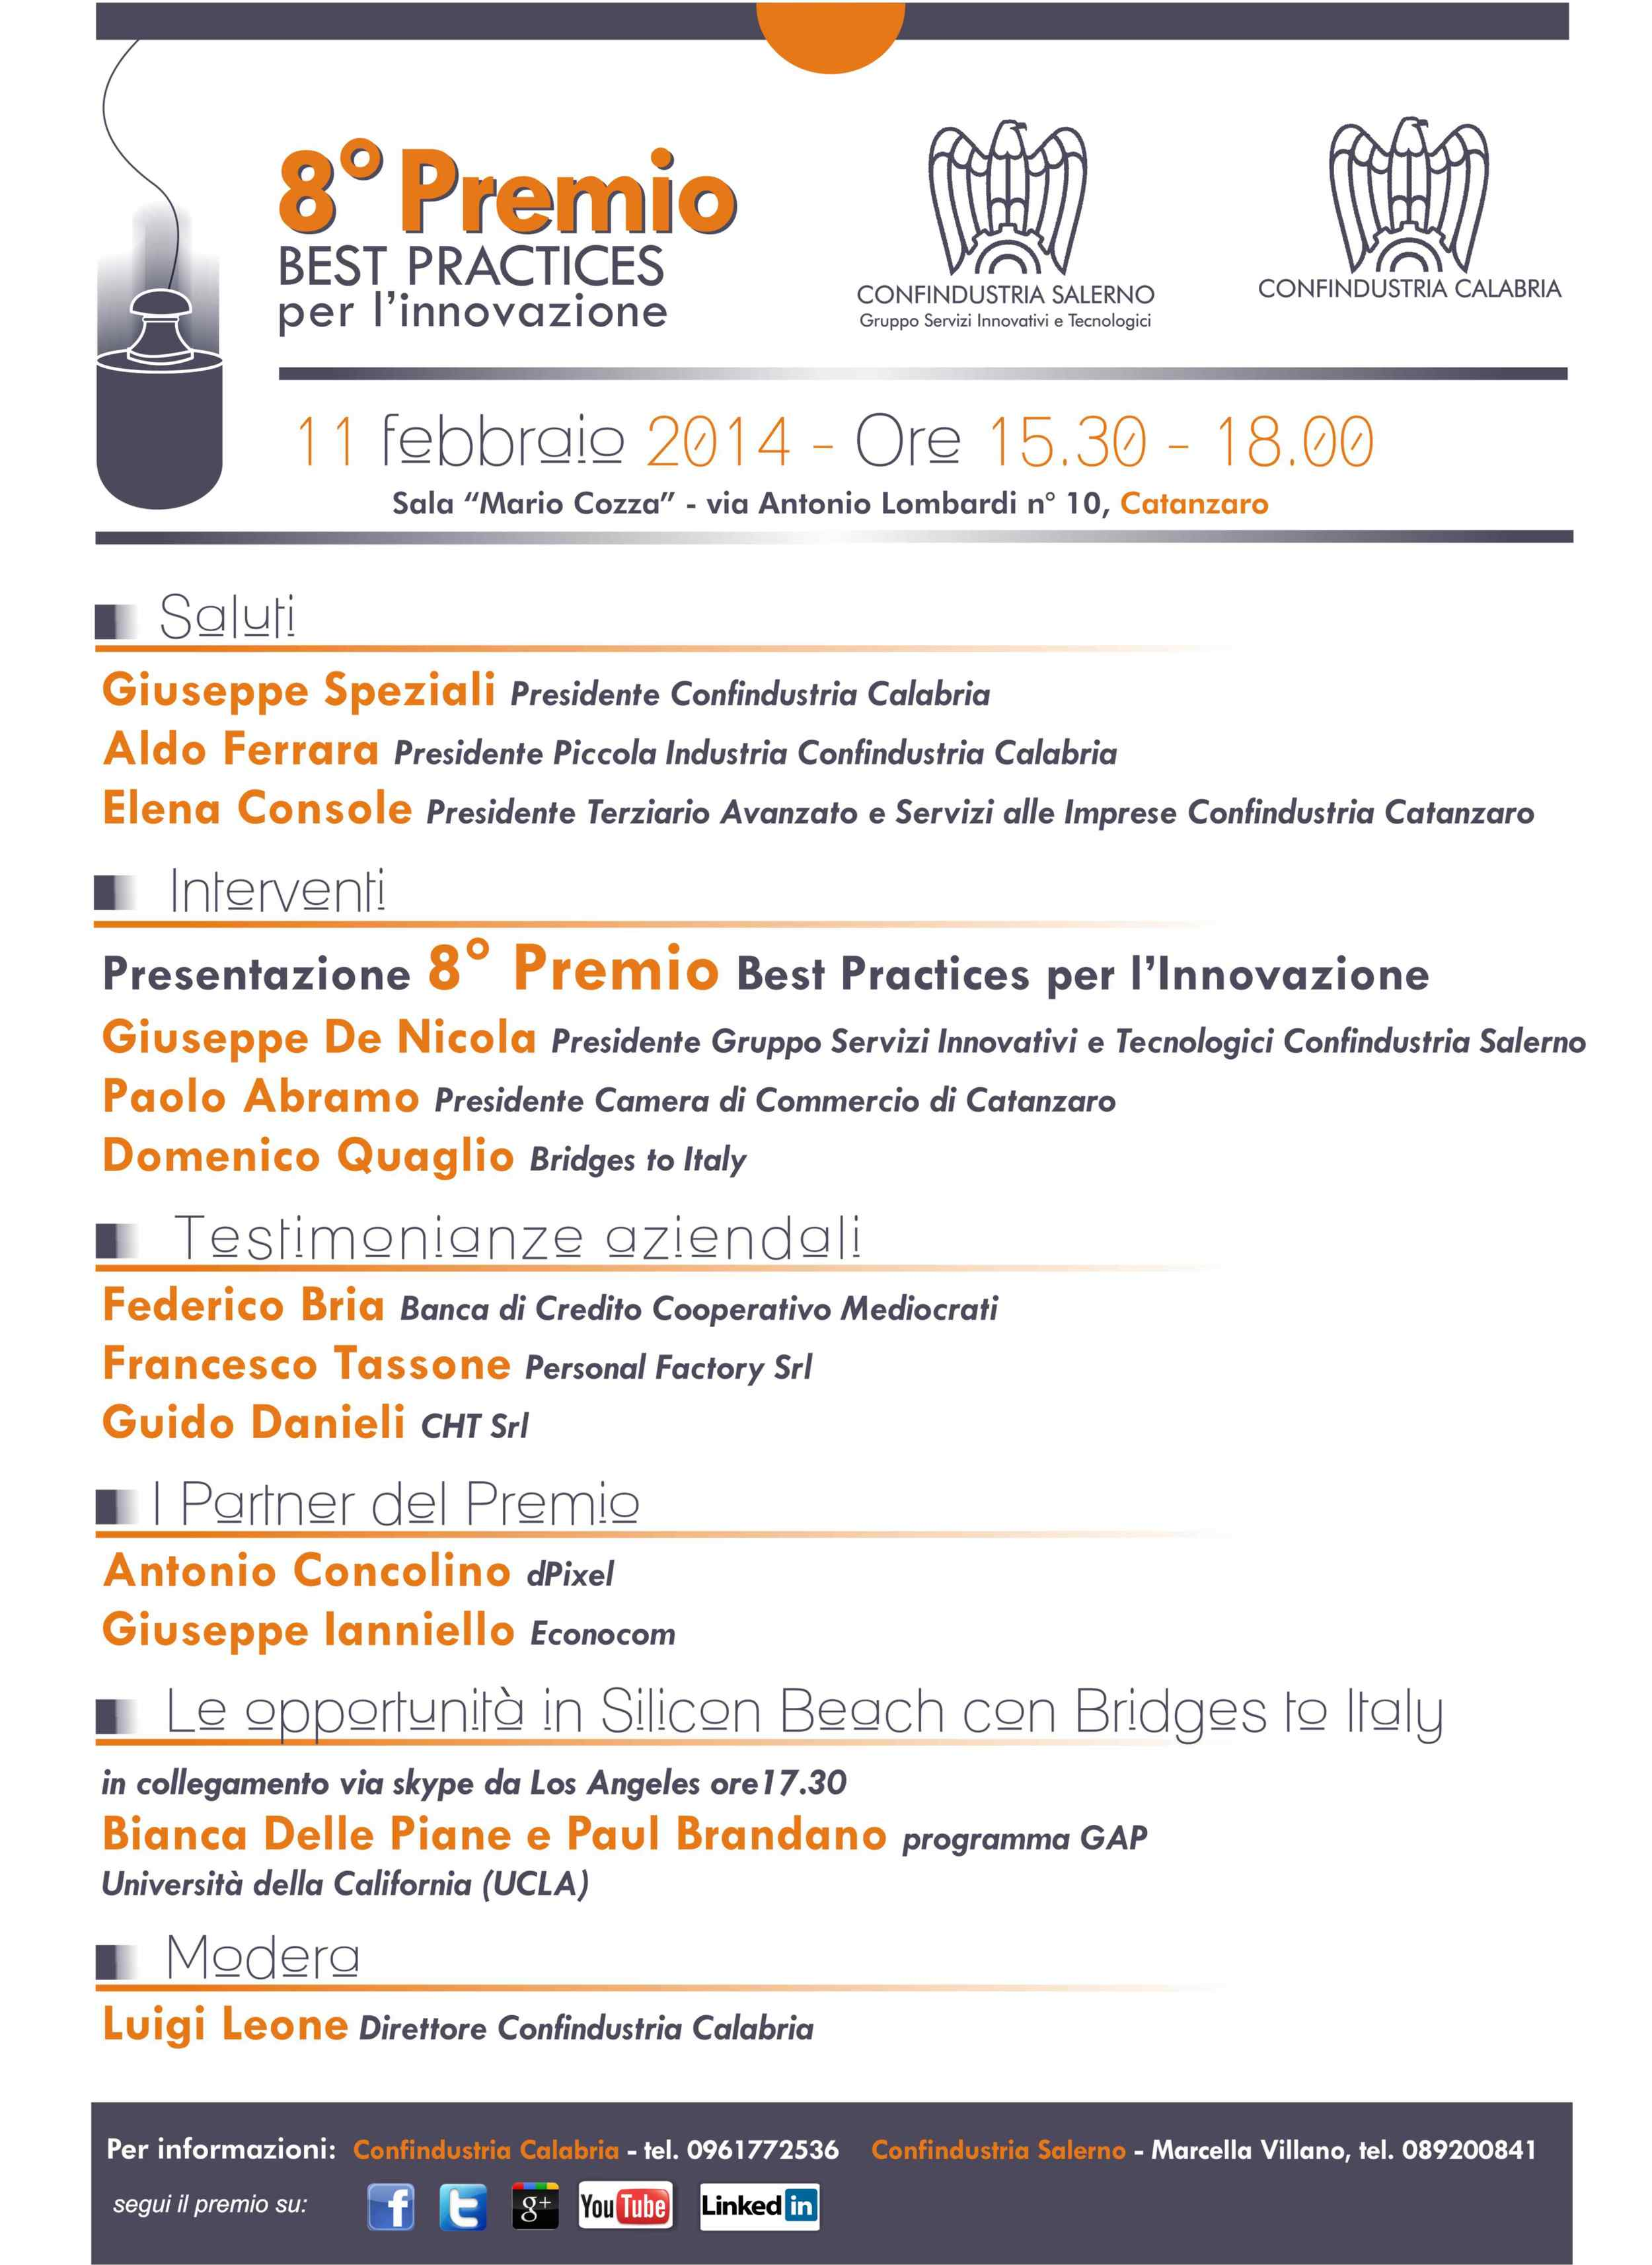 Bridges to Italy at the Presentation of Premio Best Practices in Calabria